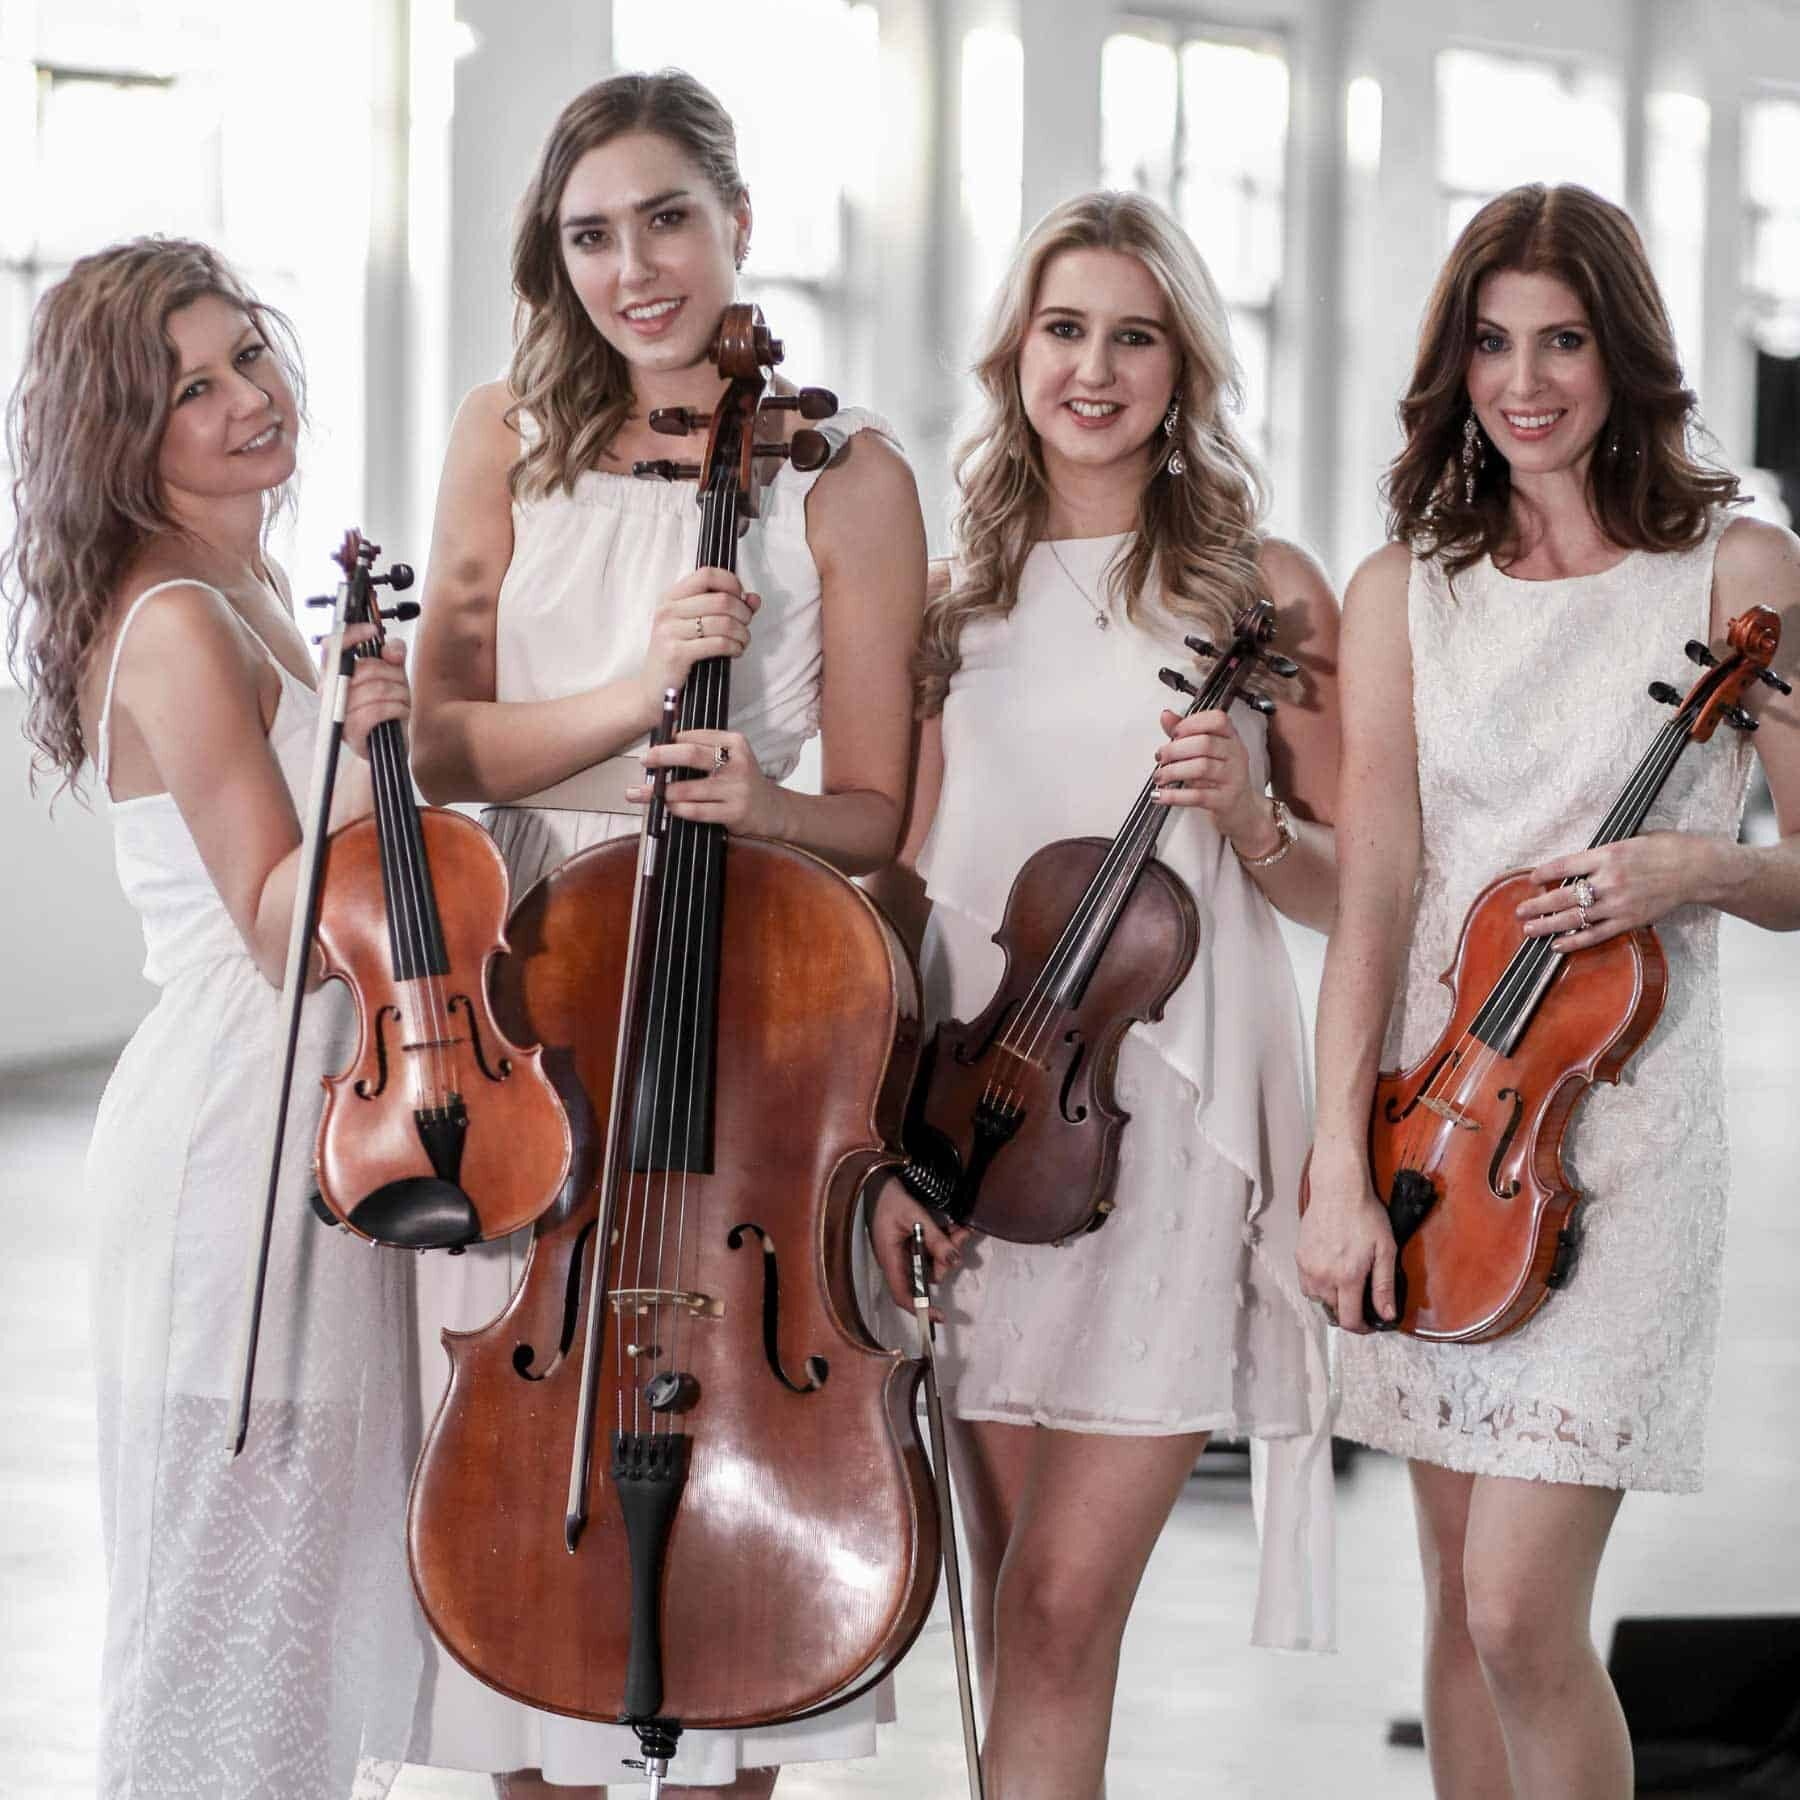 Event Entertainers - wedding bands and DJs in Sydney